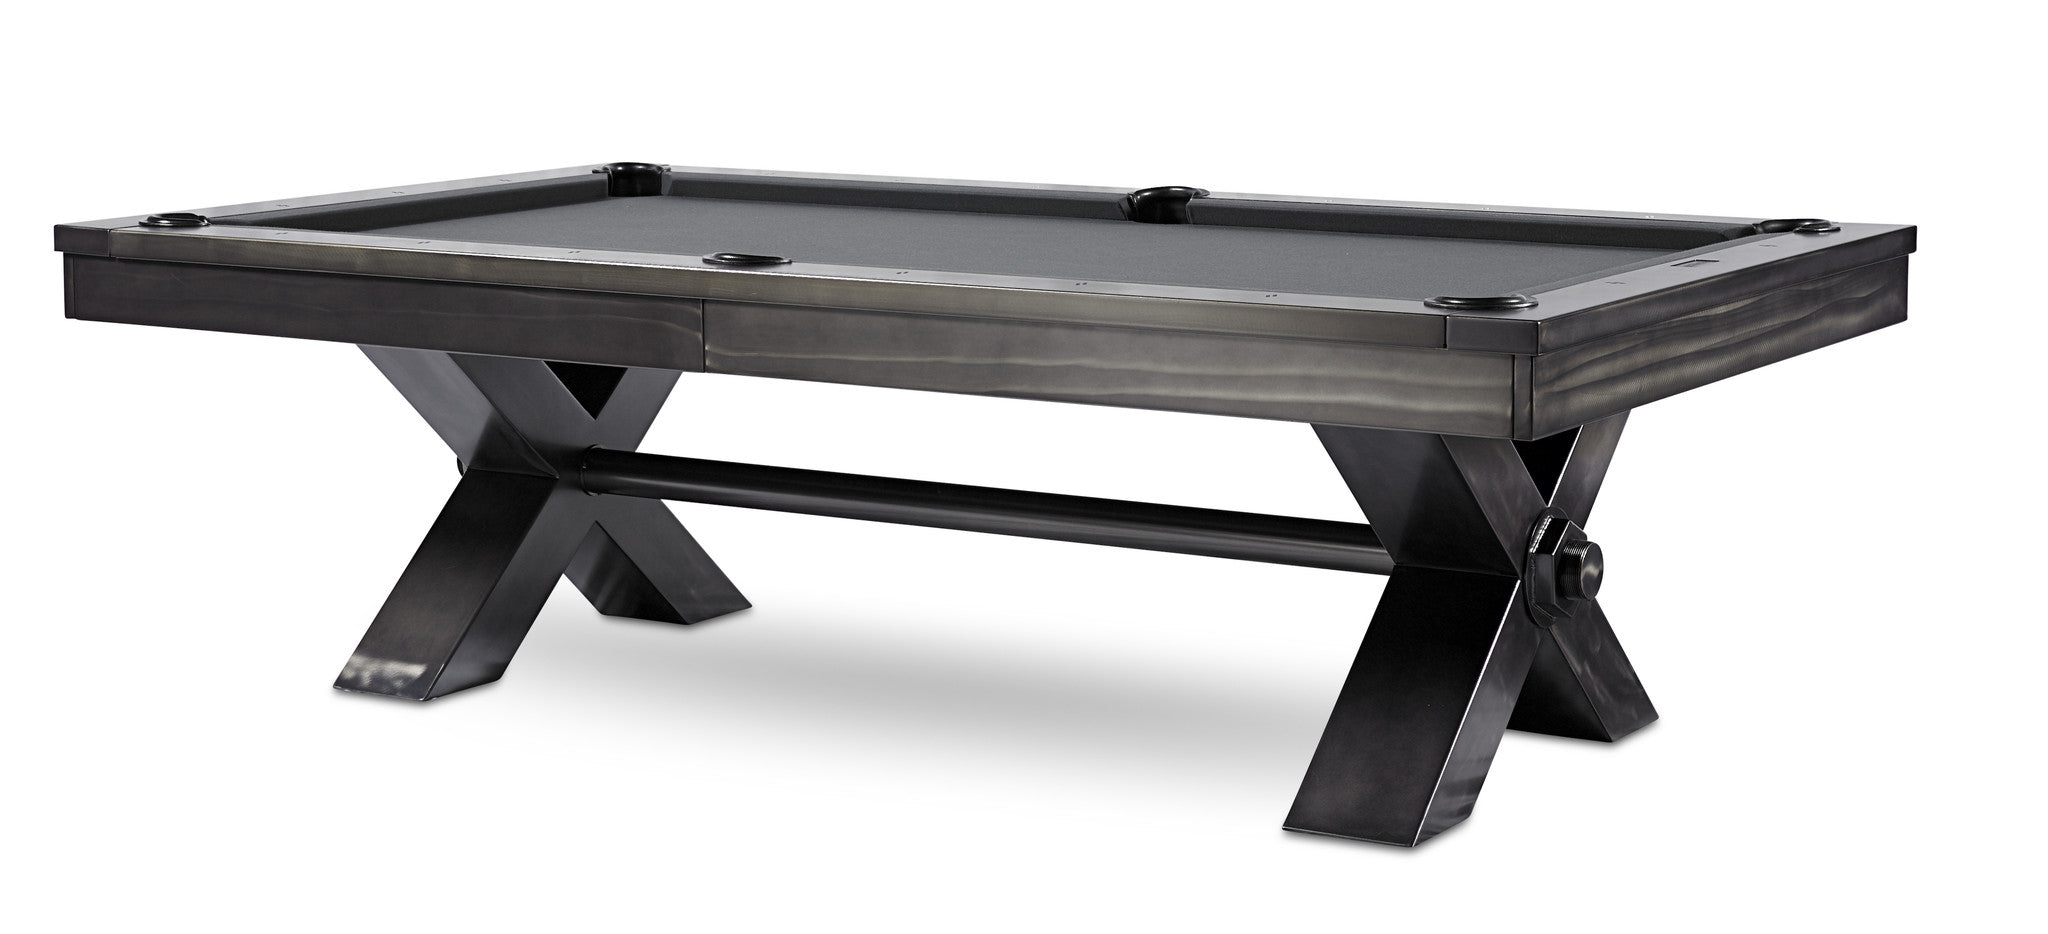 Plank Hide Pool Tables Coolpooltablescom - Connelly pool table disassembly